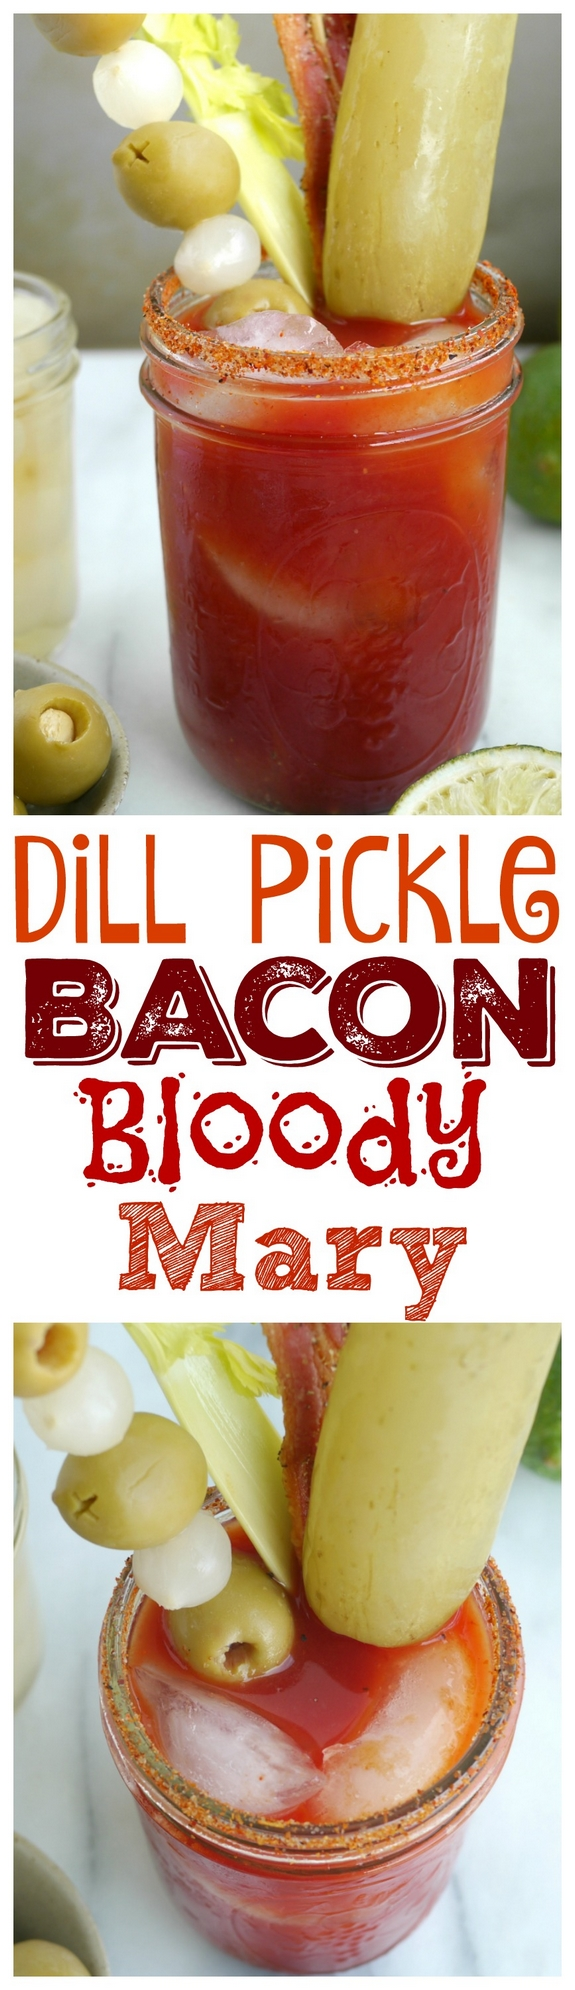 Dill Pickle Bacon Bloody Mary via @cmpollak1